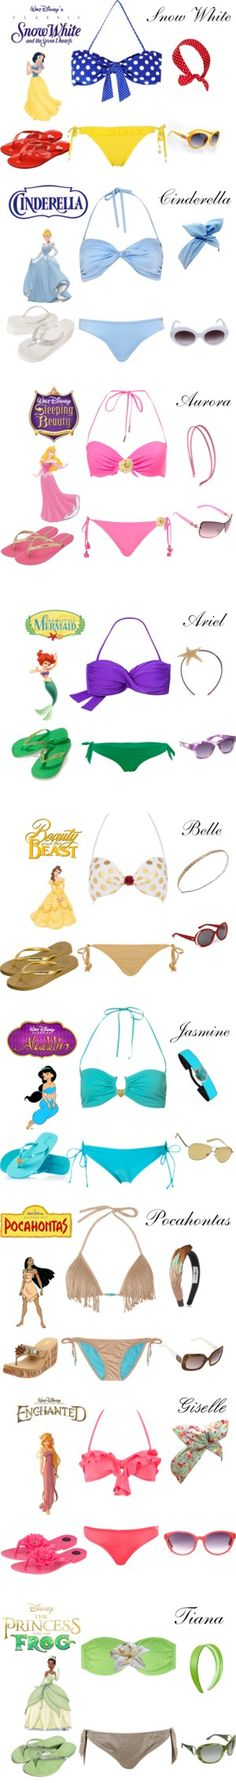 i want these for next yr when we go on the disney cruise my goal is to fit in to this